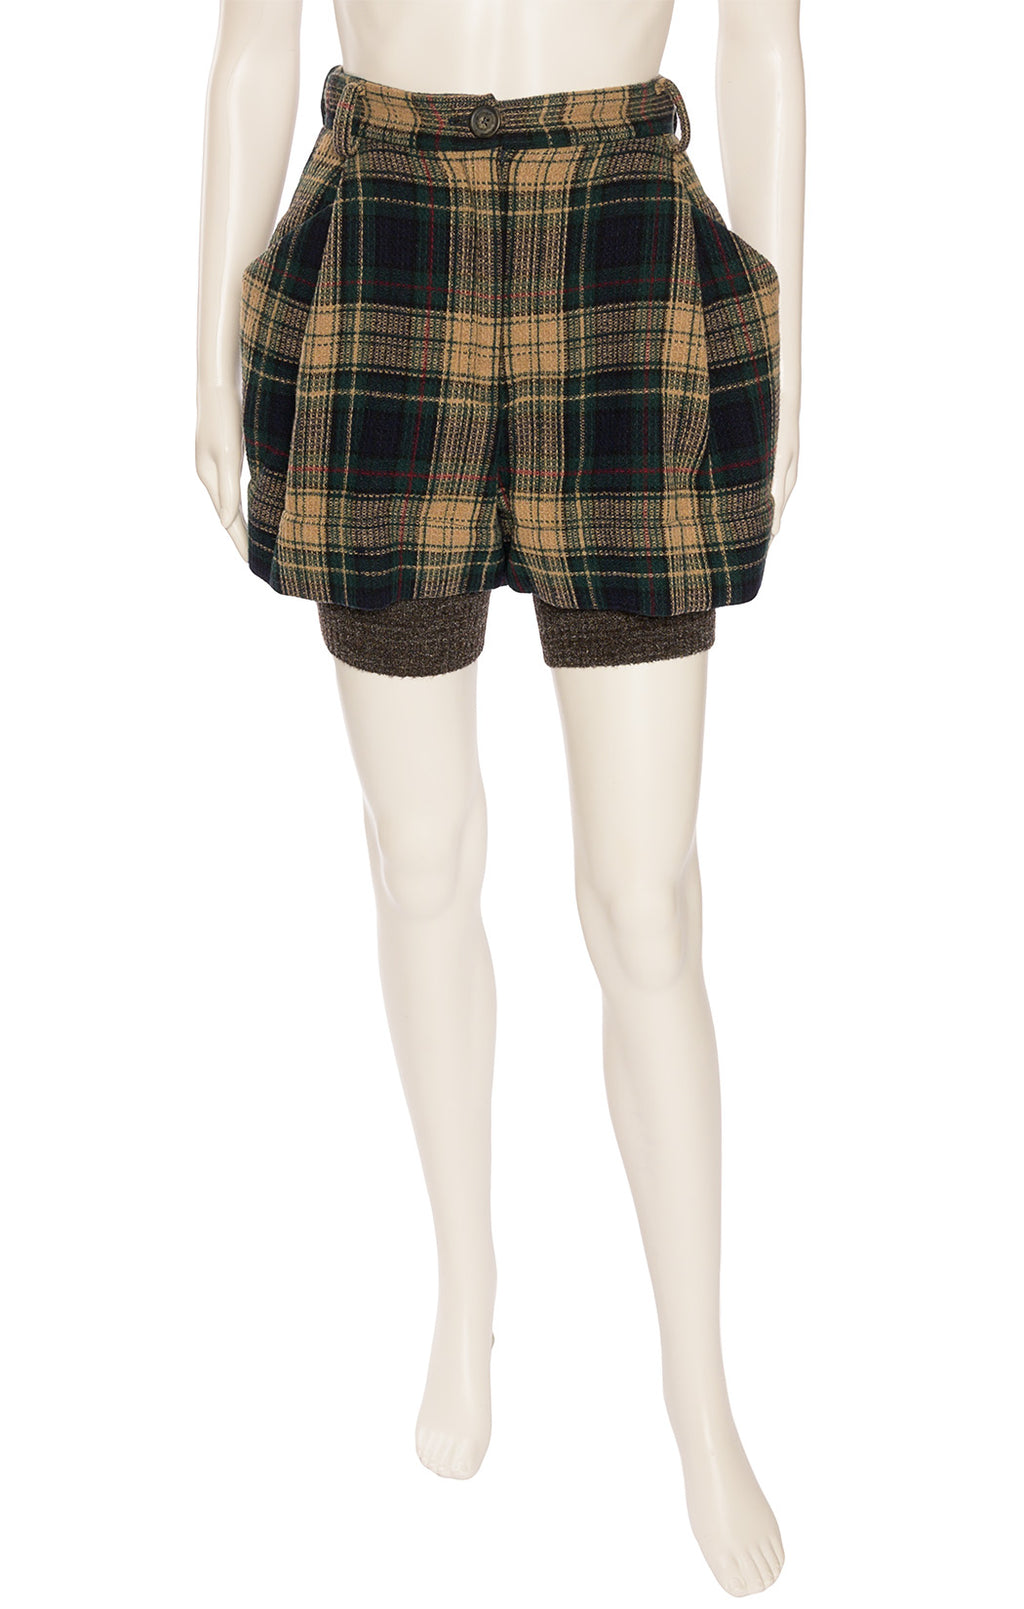 Navy green beige and red plaid pleated shorts with front zipper, belt loops, side and back pockets with attached gray sweater type hemline